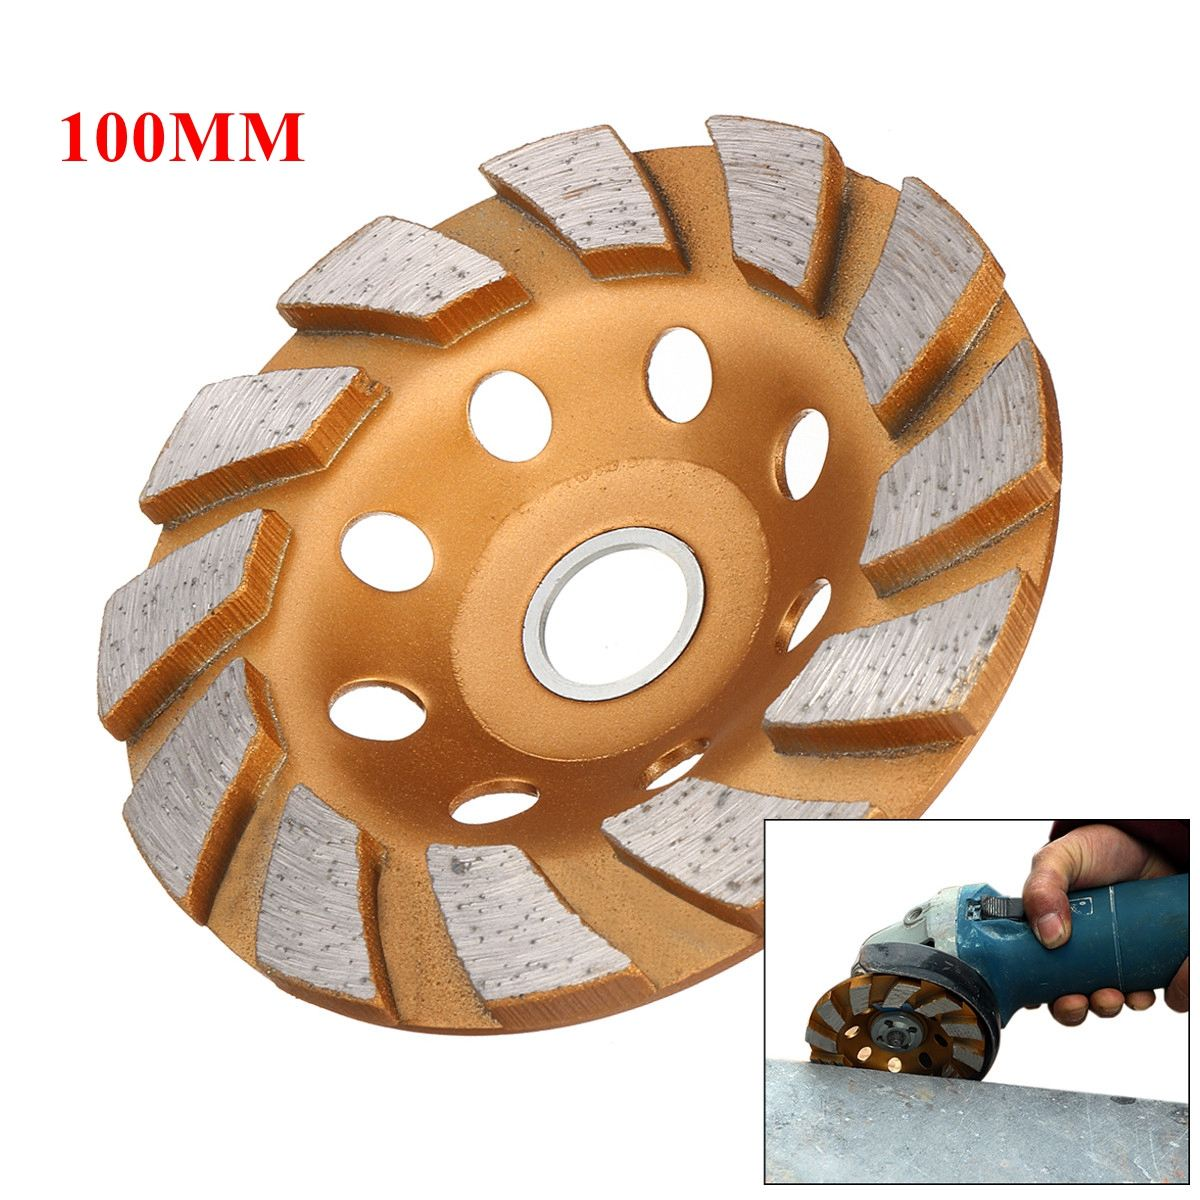 100mm/4inch 8 Holes HGS Segment Grinding Wheel Diamond Grind Cup Disc Concrete Granite Stone Grinder DIY Power Tool